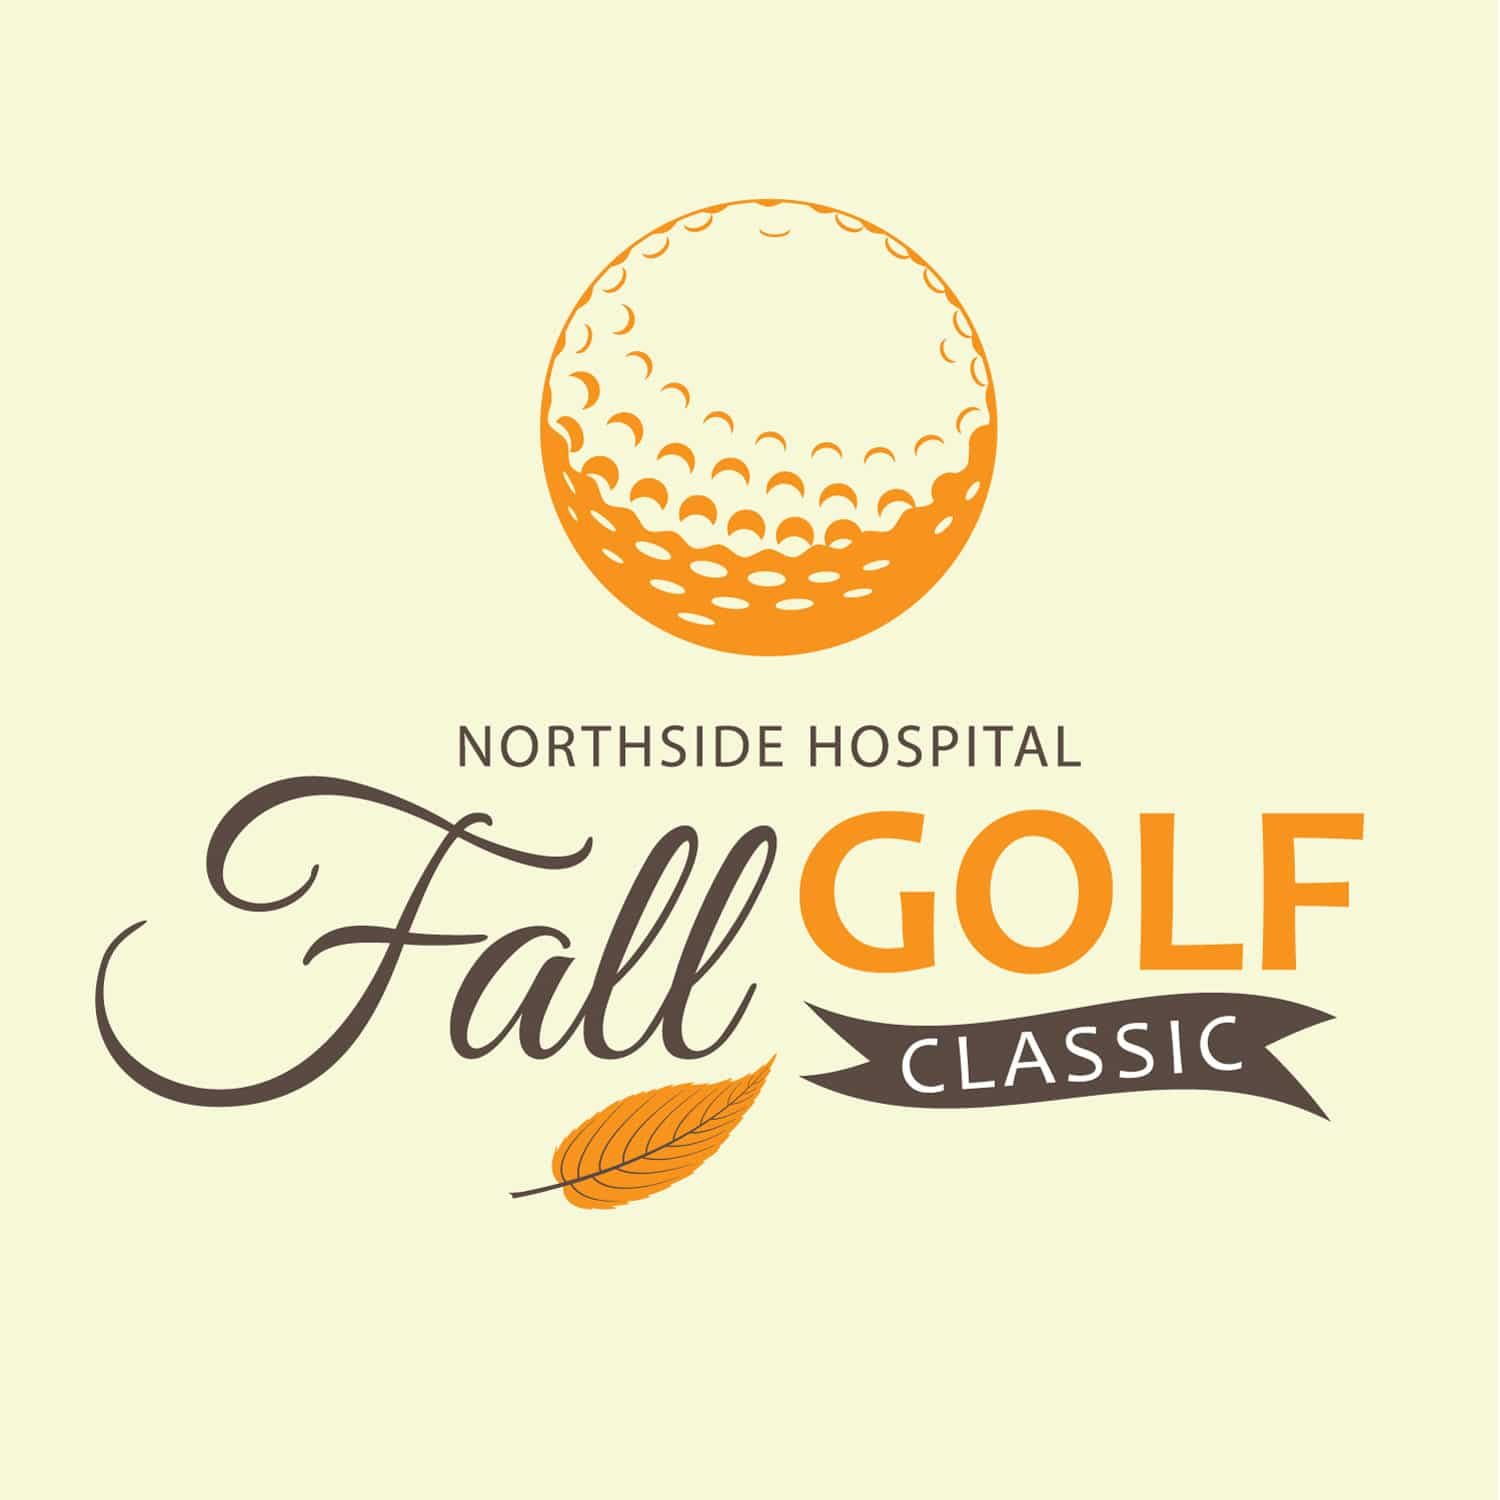 Northside Hospital Fall Golf Classic